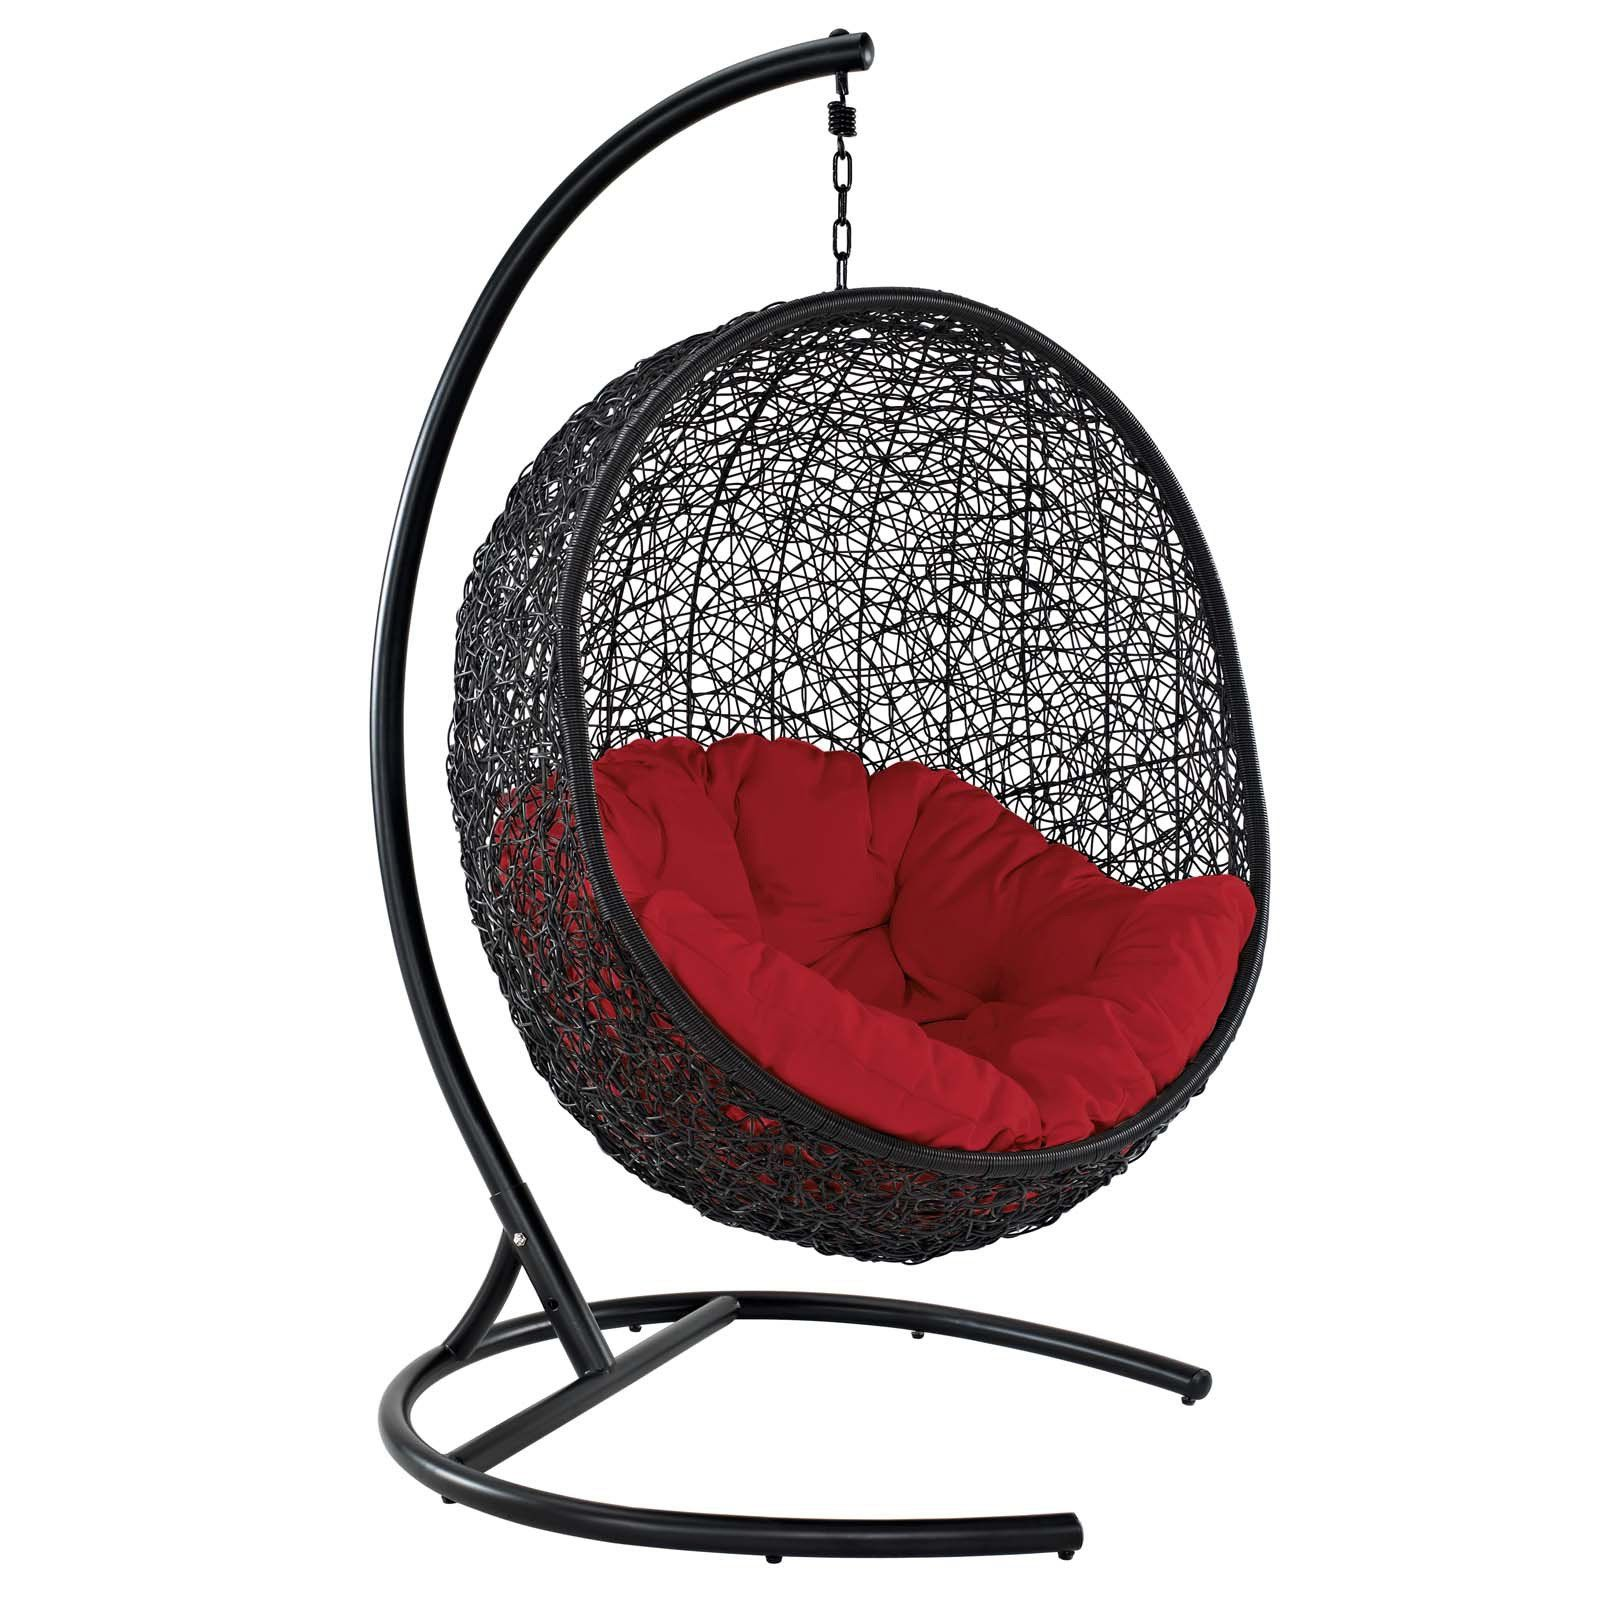 Fine Outdoor Modway Encase Swing Patio Lounge Woven Hanging Chair Bralicious Painted Fabric Chair Ideas Braliciousco